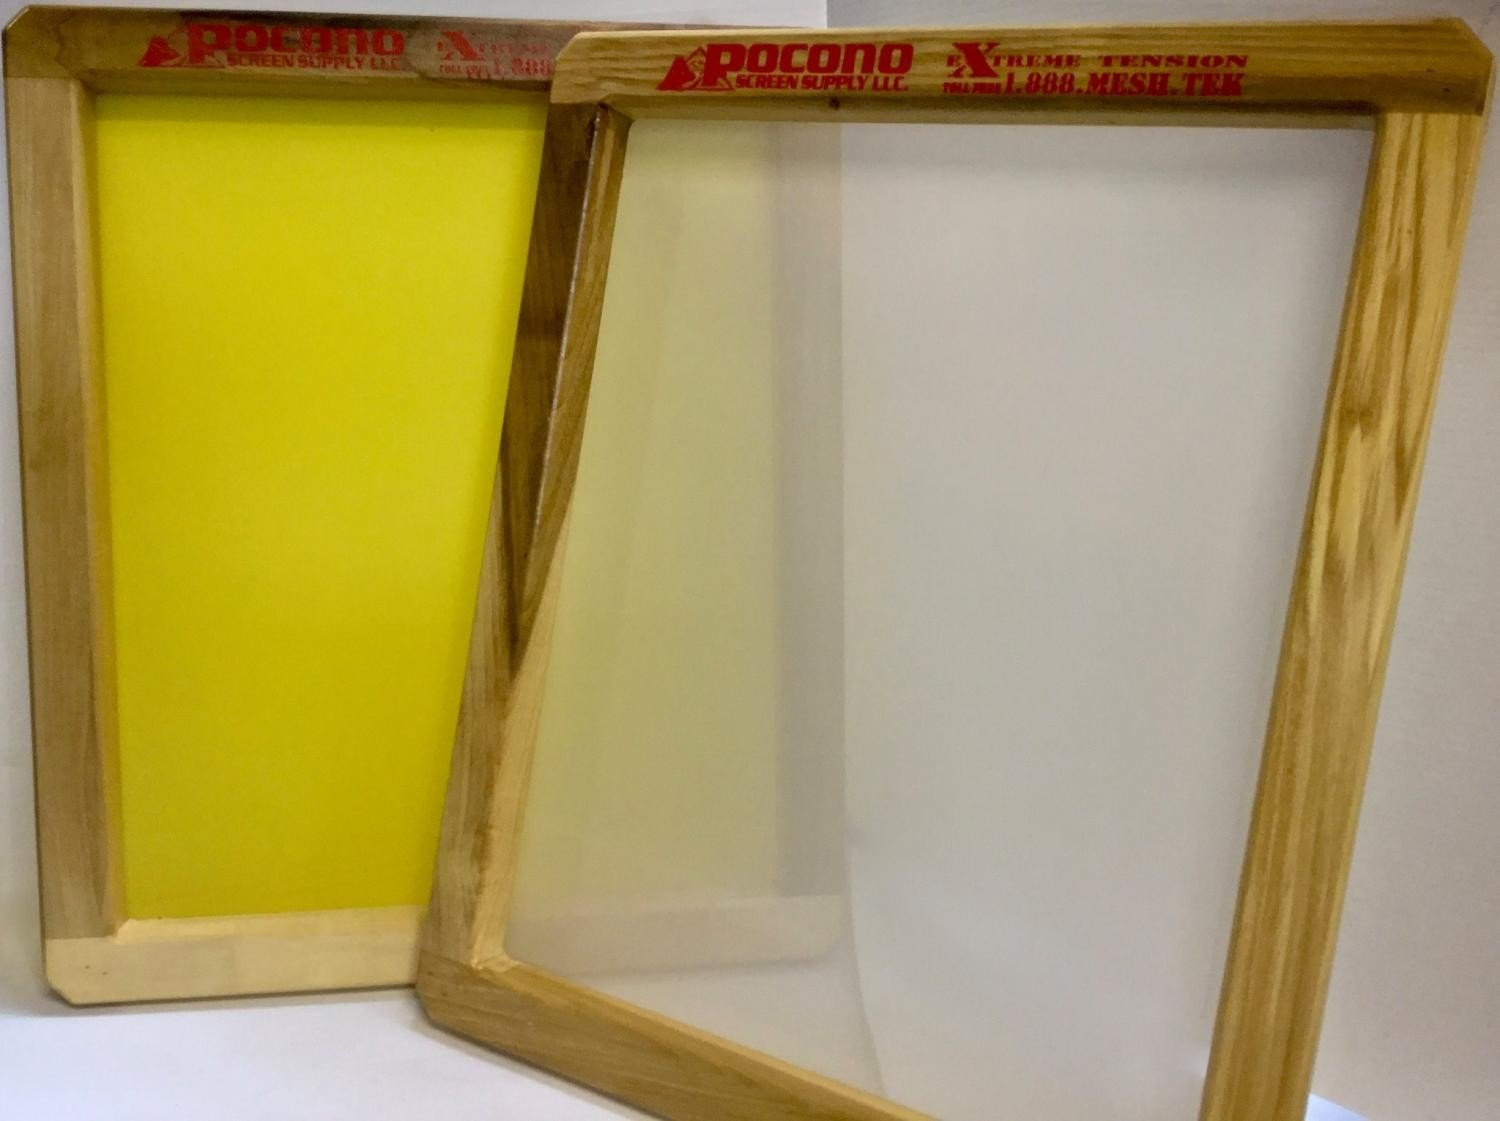 Pocono Screen Supply 18 X 20 Wooden Screen Printing Frame Two-Pack